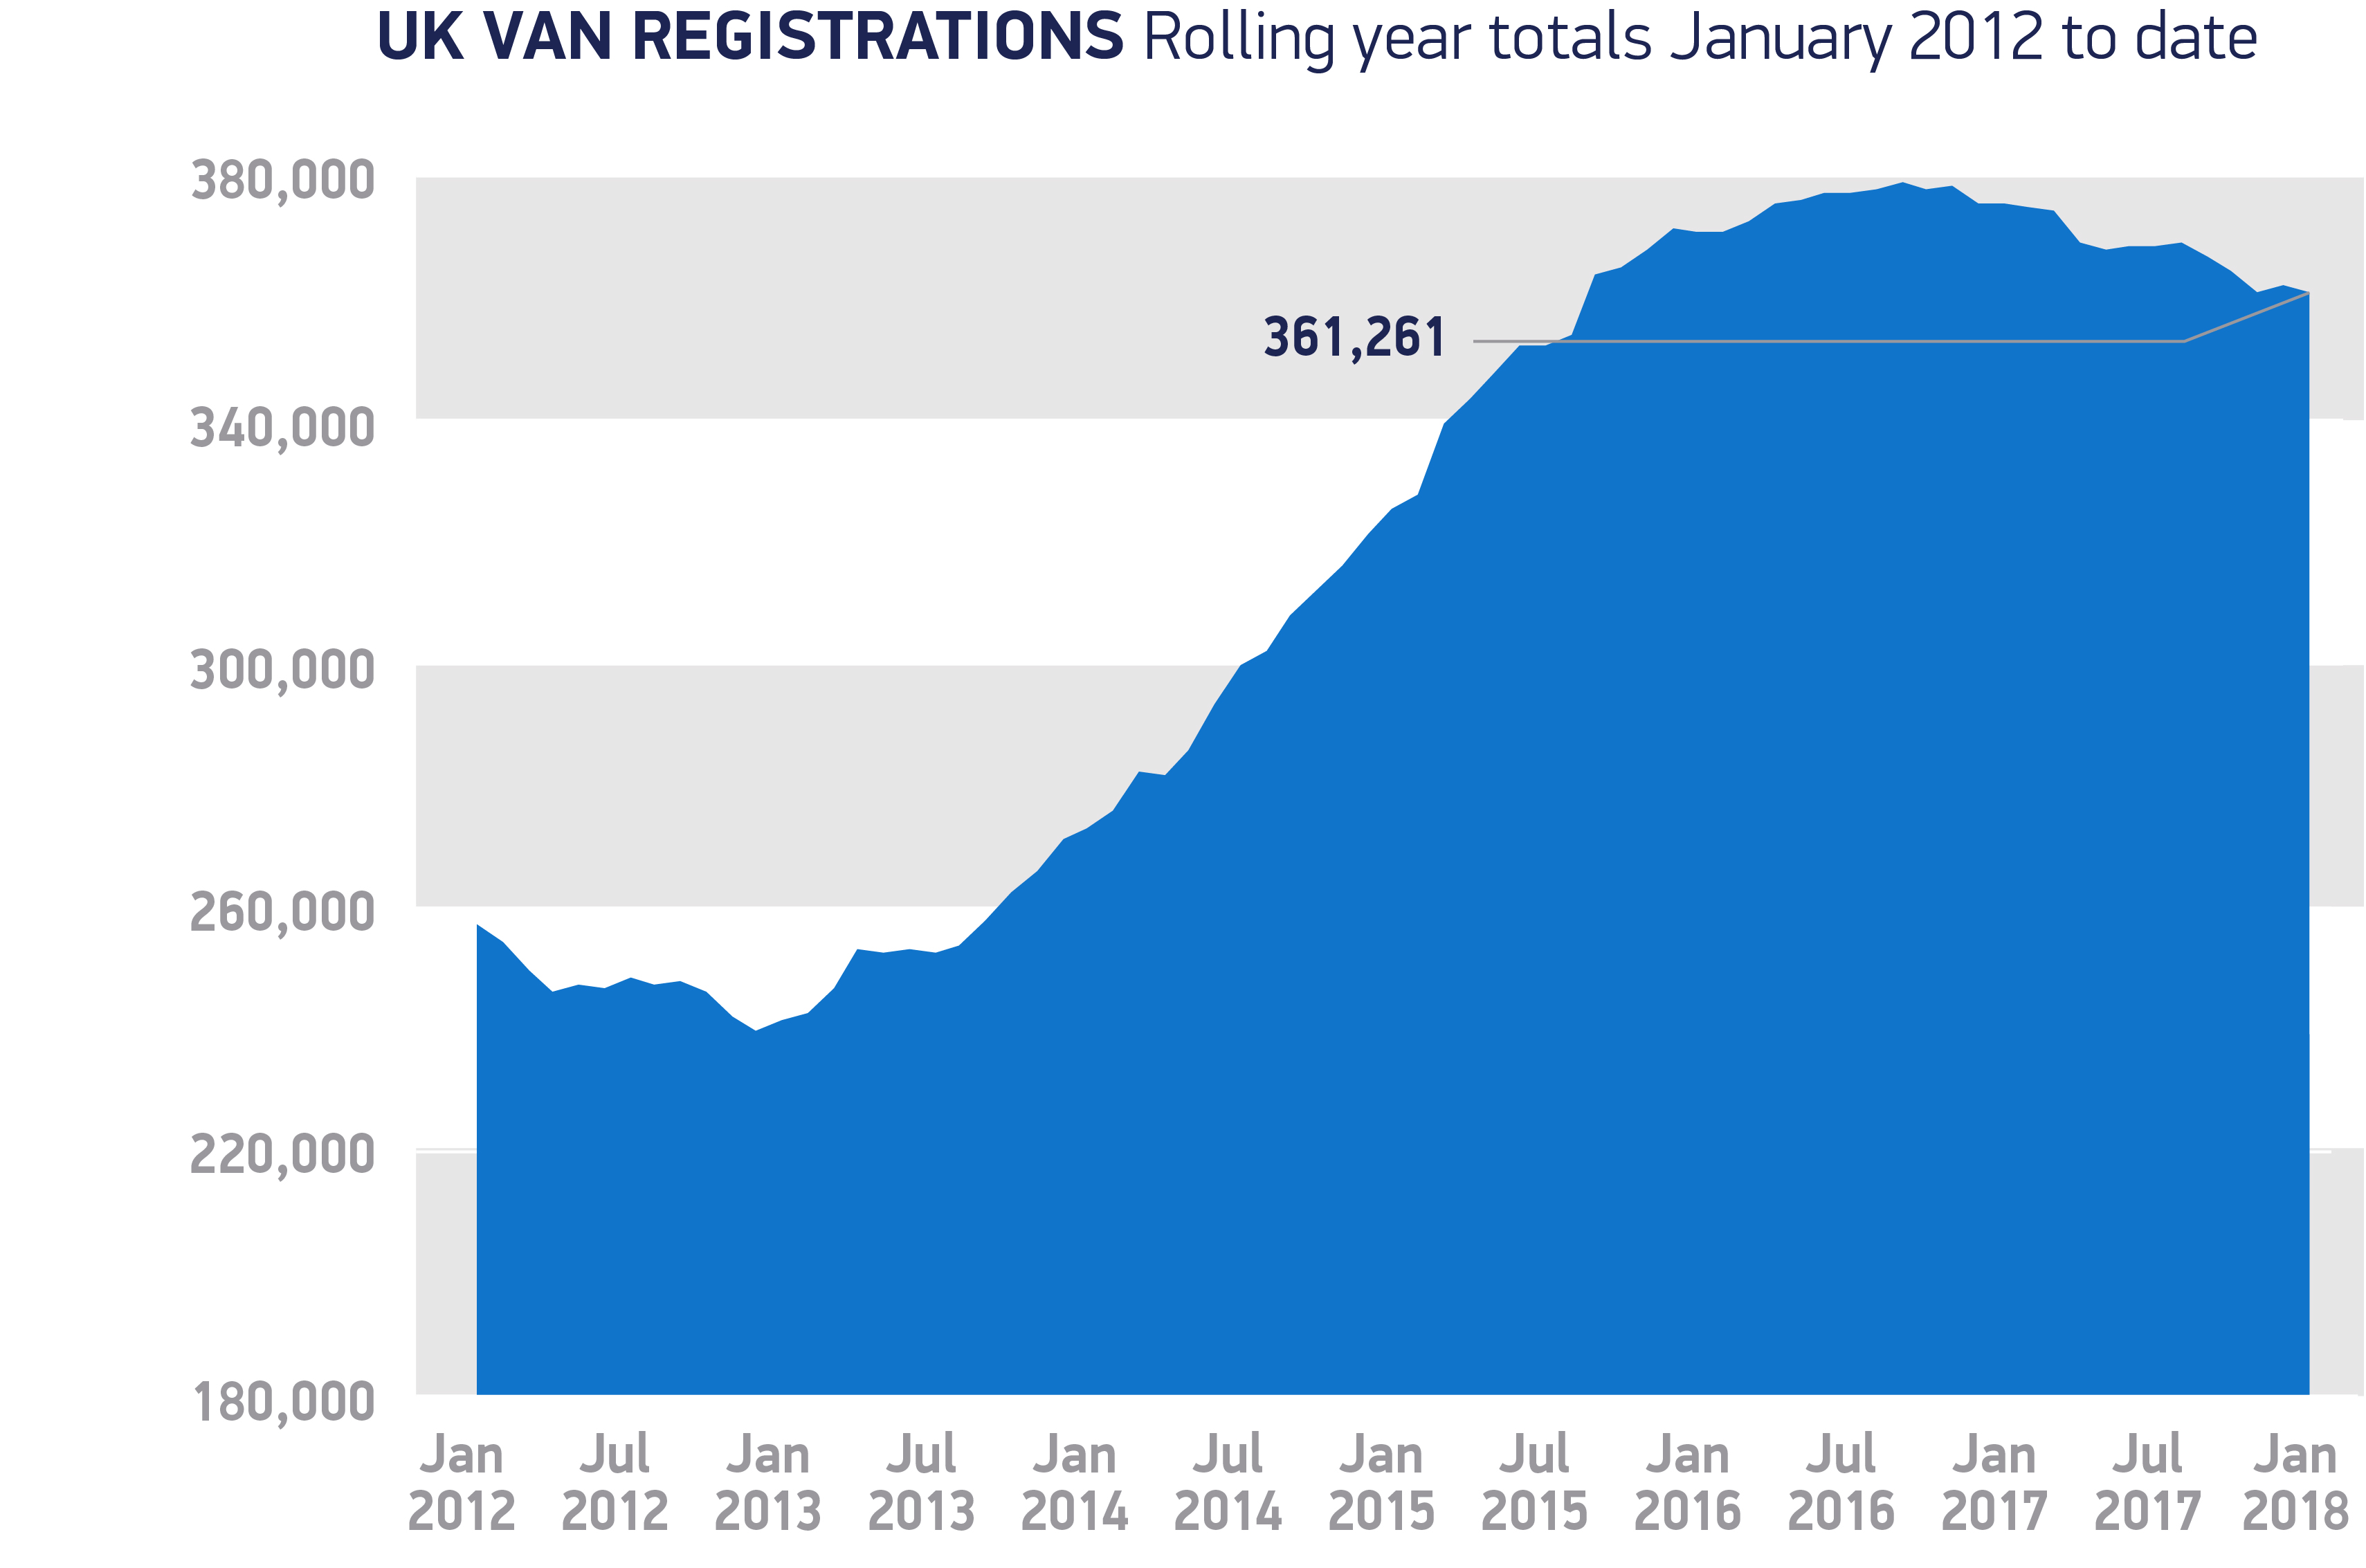 Van registrations rolling year totals January 2012 to-date 2018 chart